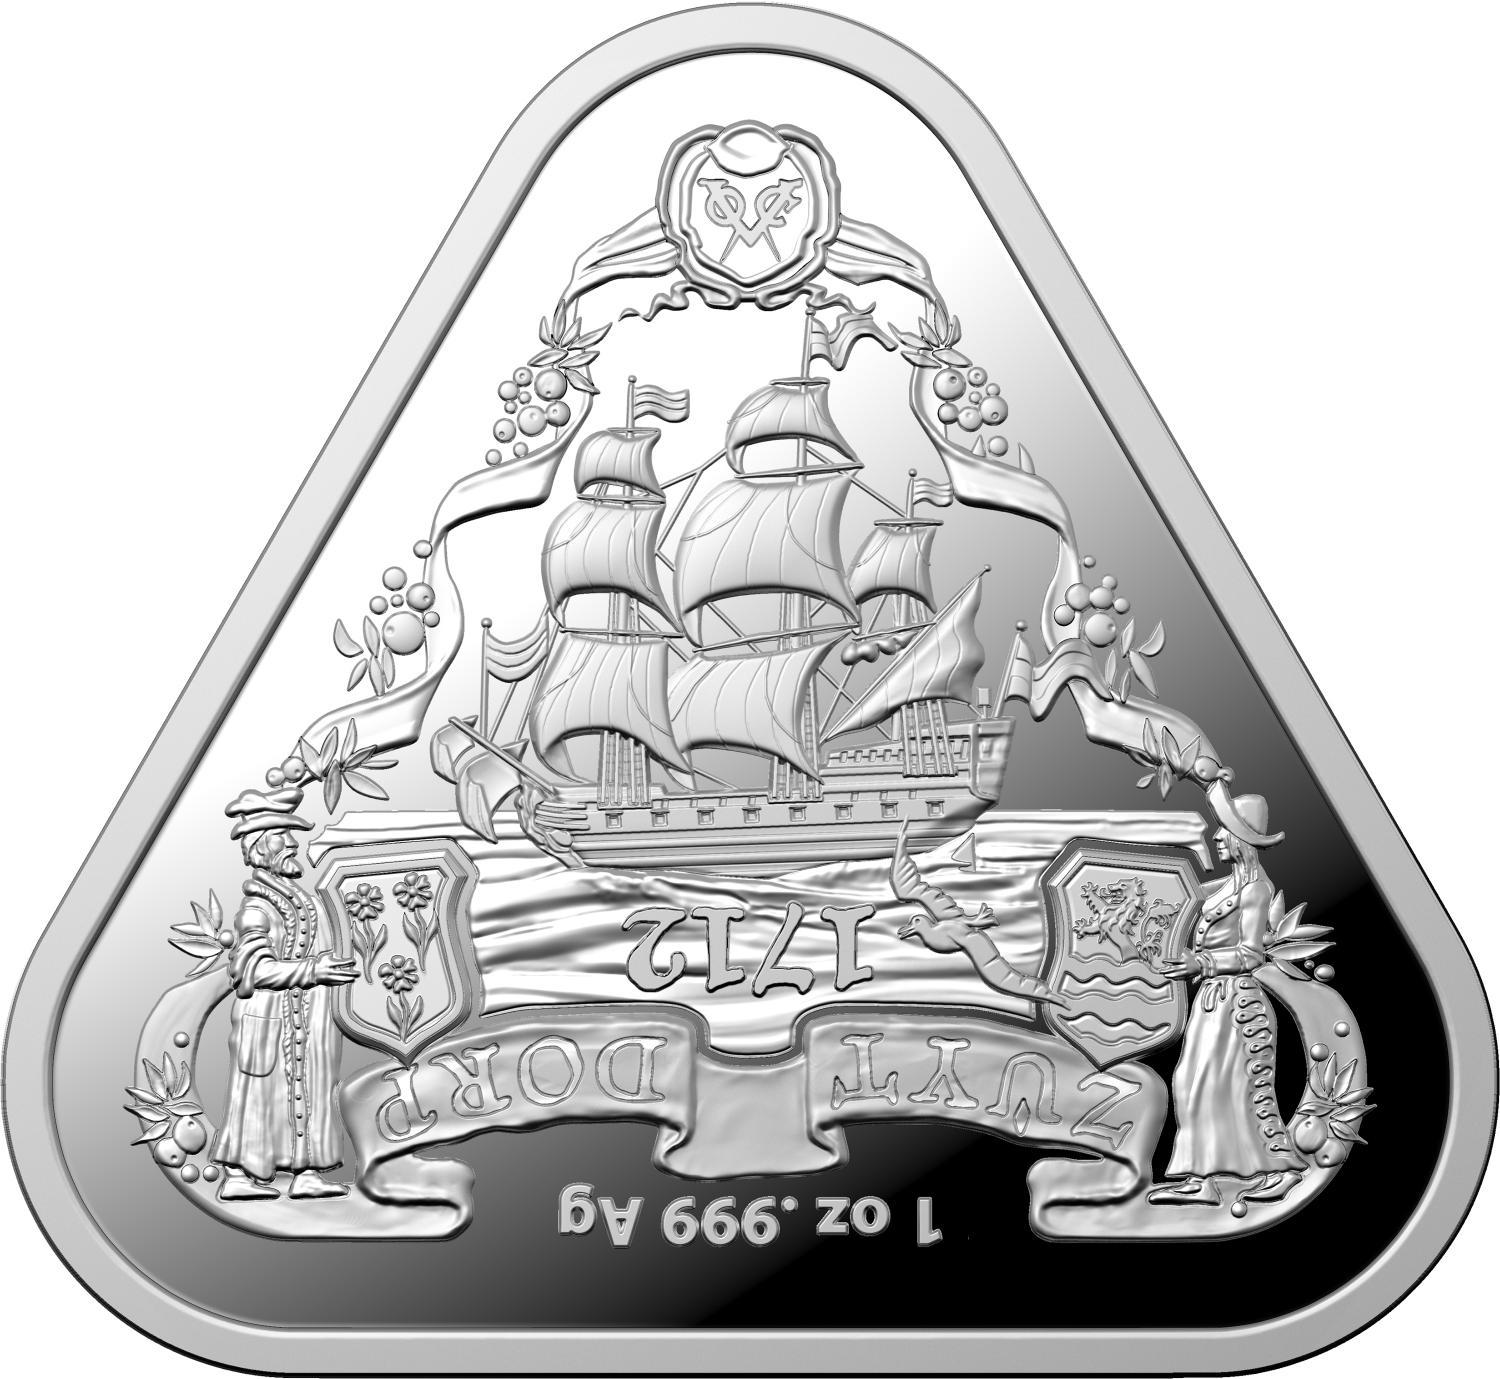 Thumbnail for 2020 1oz Silver Triangular Coin Australian Shipwreck Series - Zuytdorp